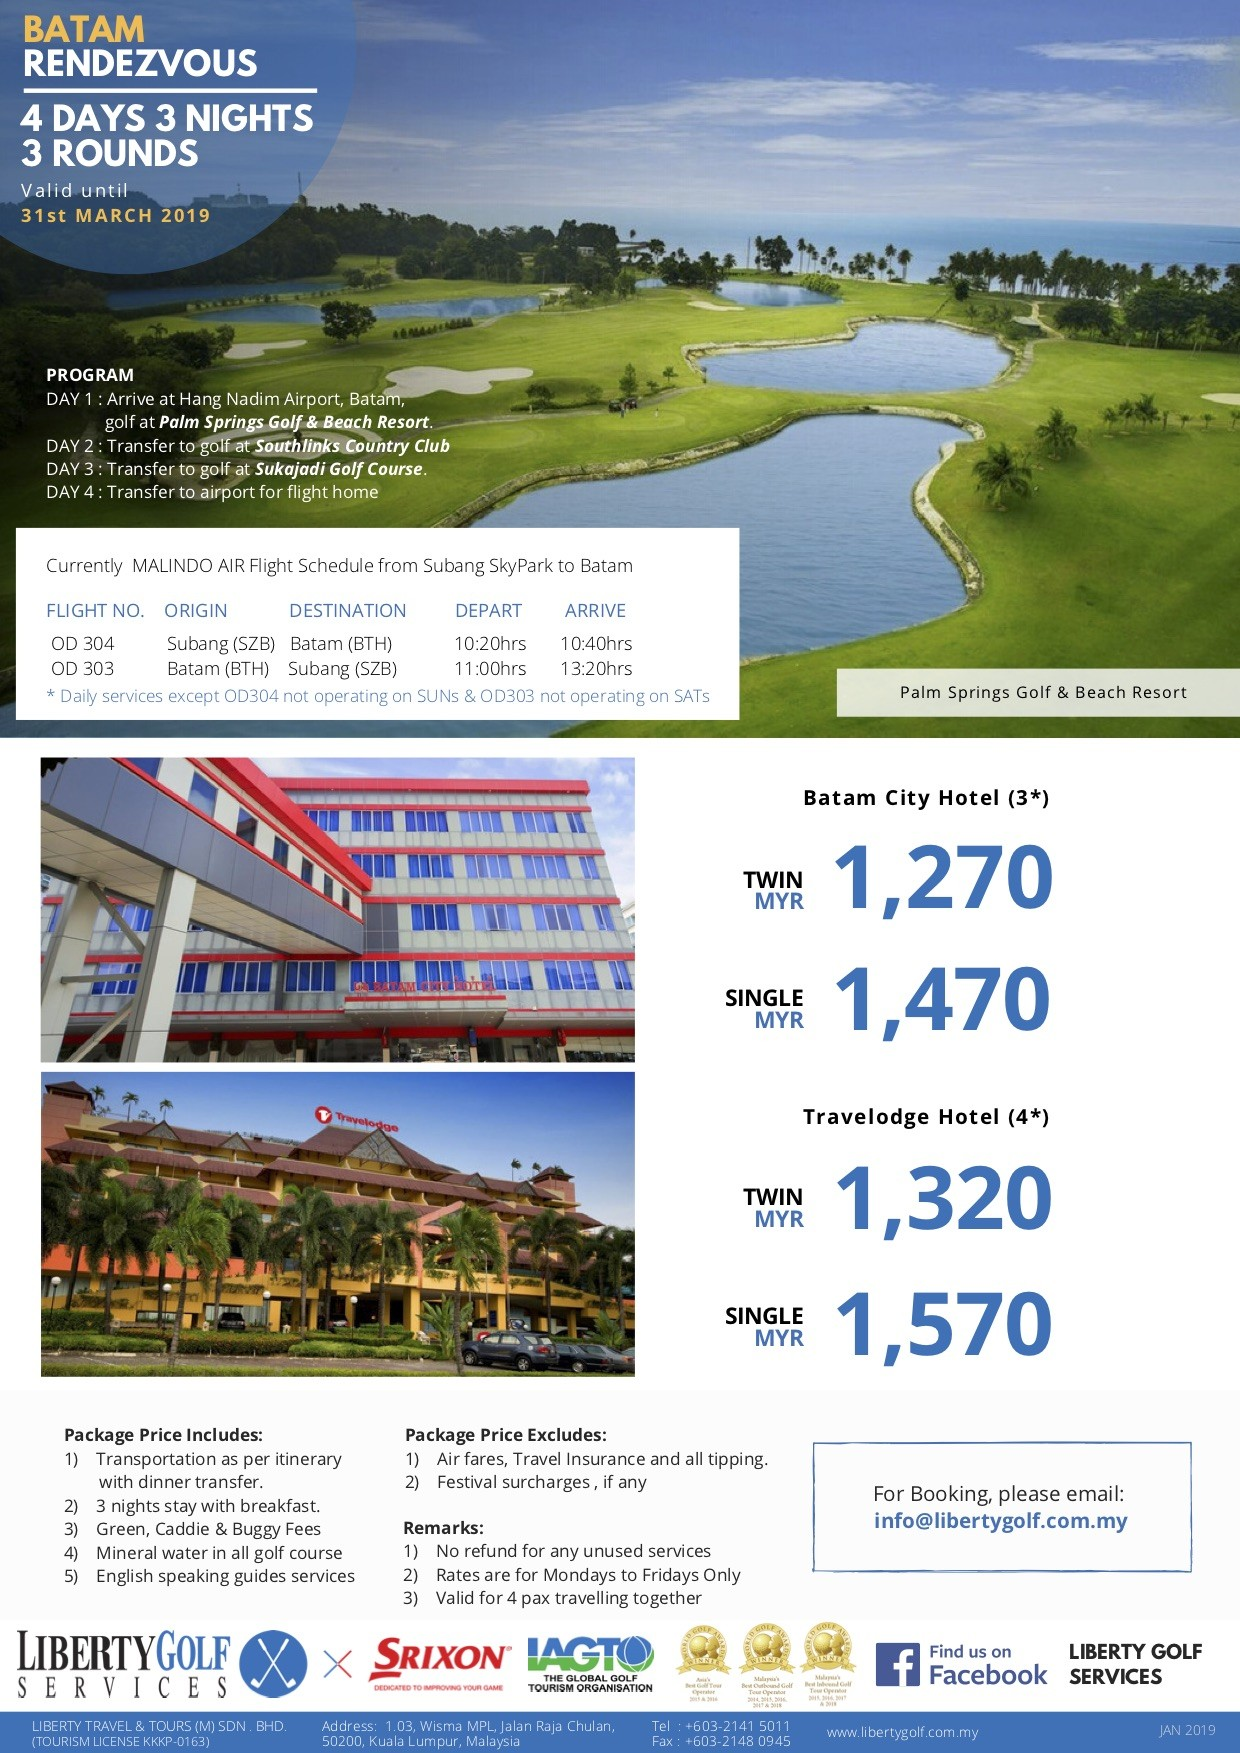 March 2019 Calendar Landscape Mejores Y Más Novedosos Liberty Golf Batam Golf Package 4d3n3r Of March 2019 Calendar Landscape Más Arriba-a-fecha Travel with the Lakeland Chamber the israel Adventure May 24